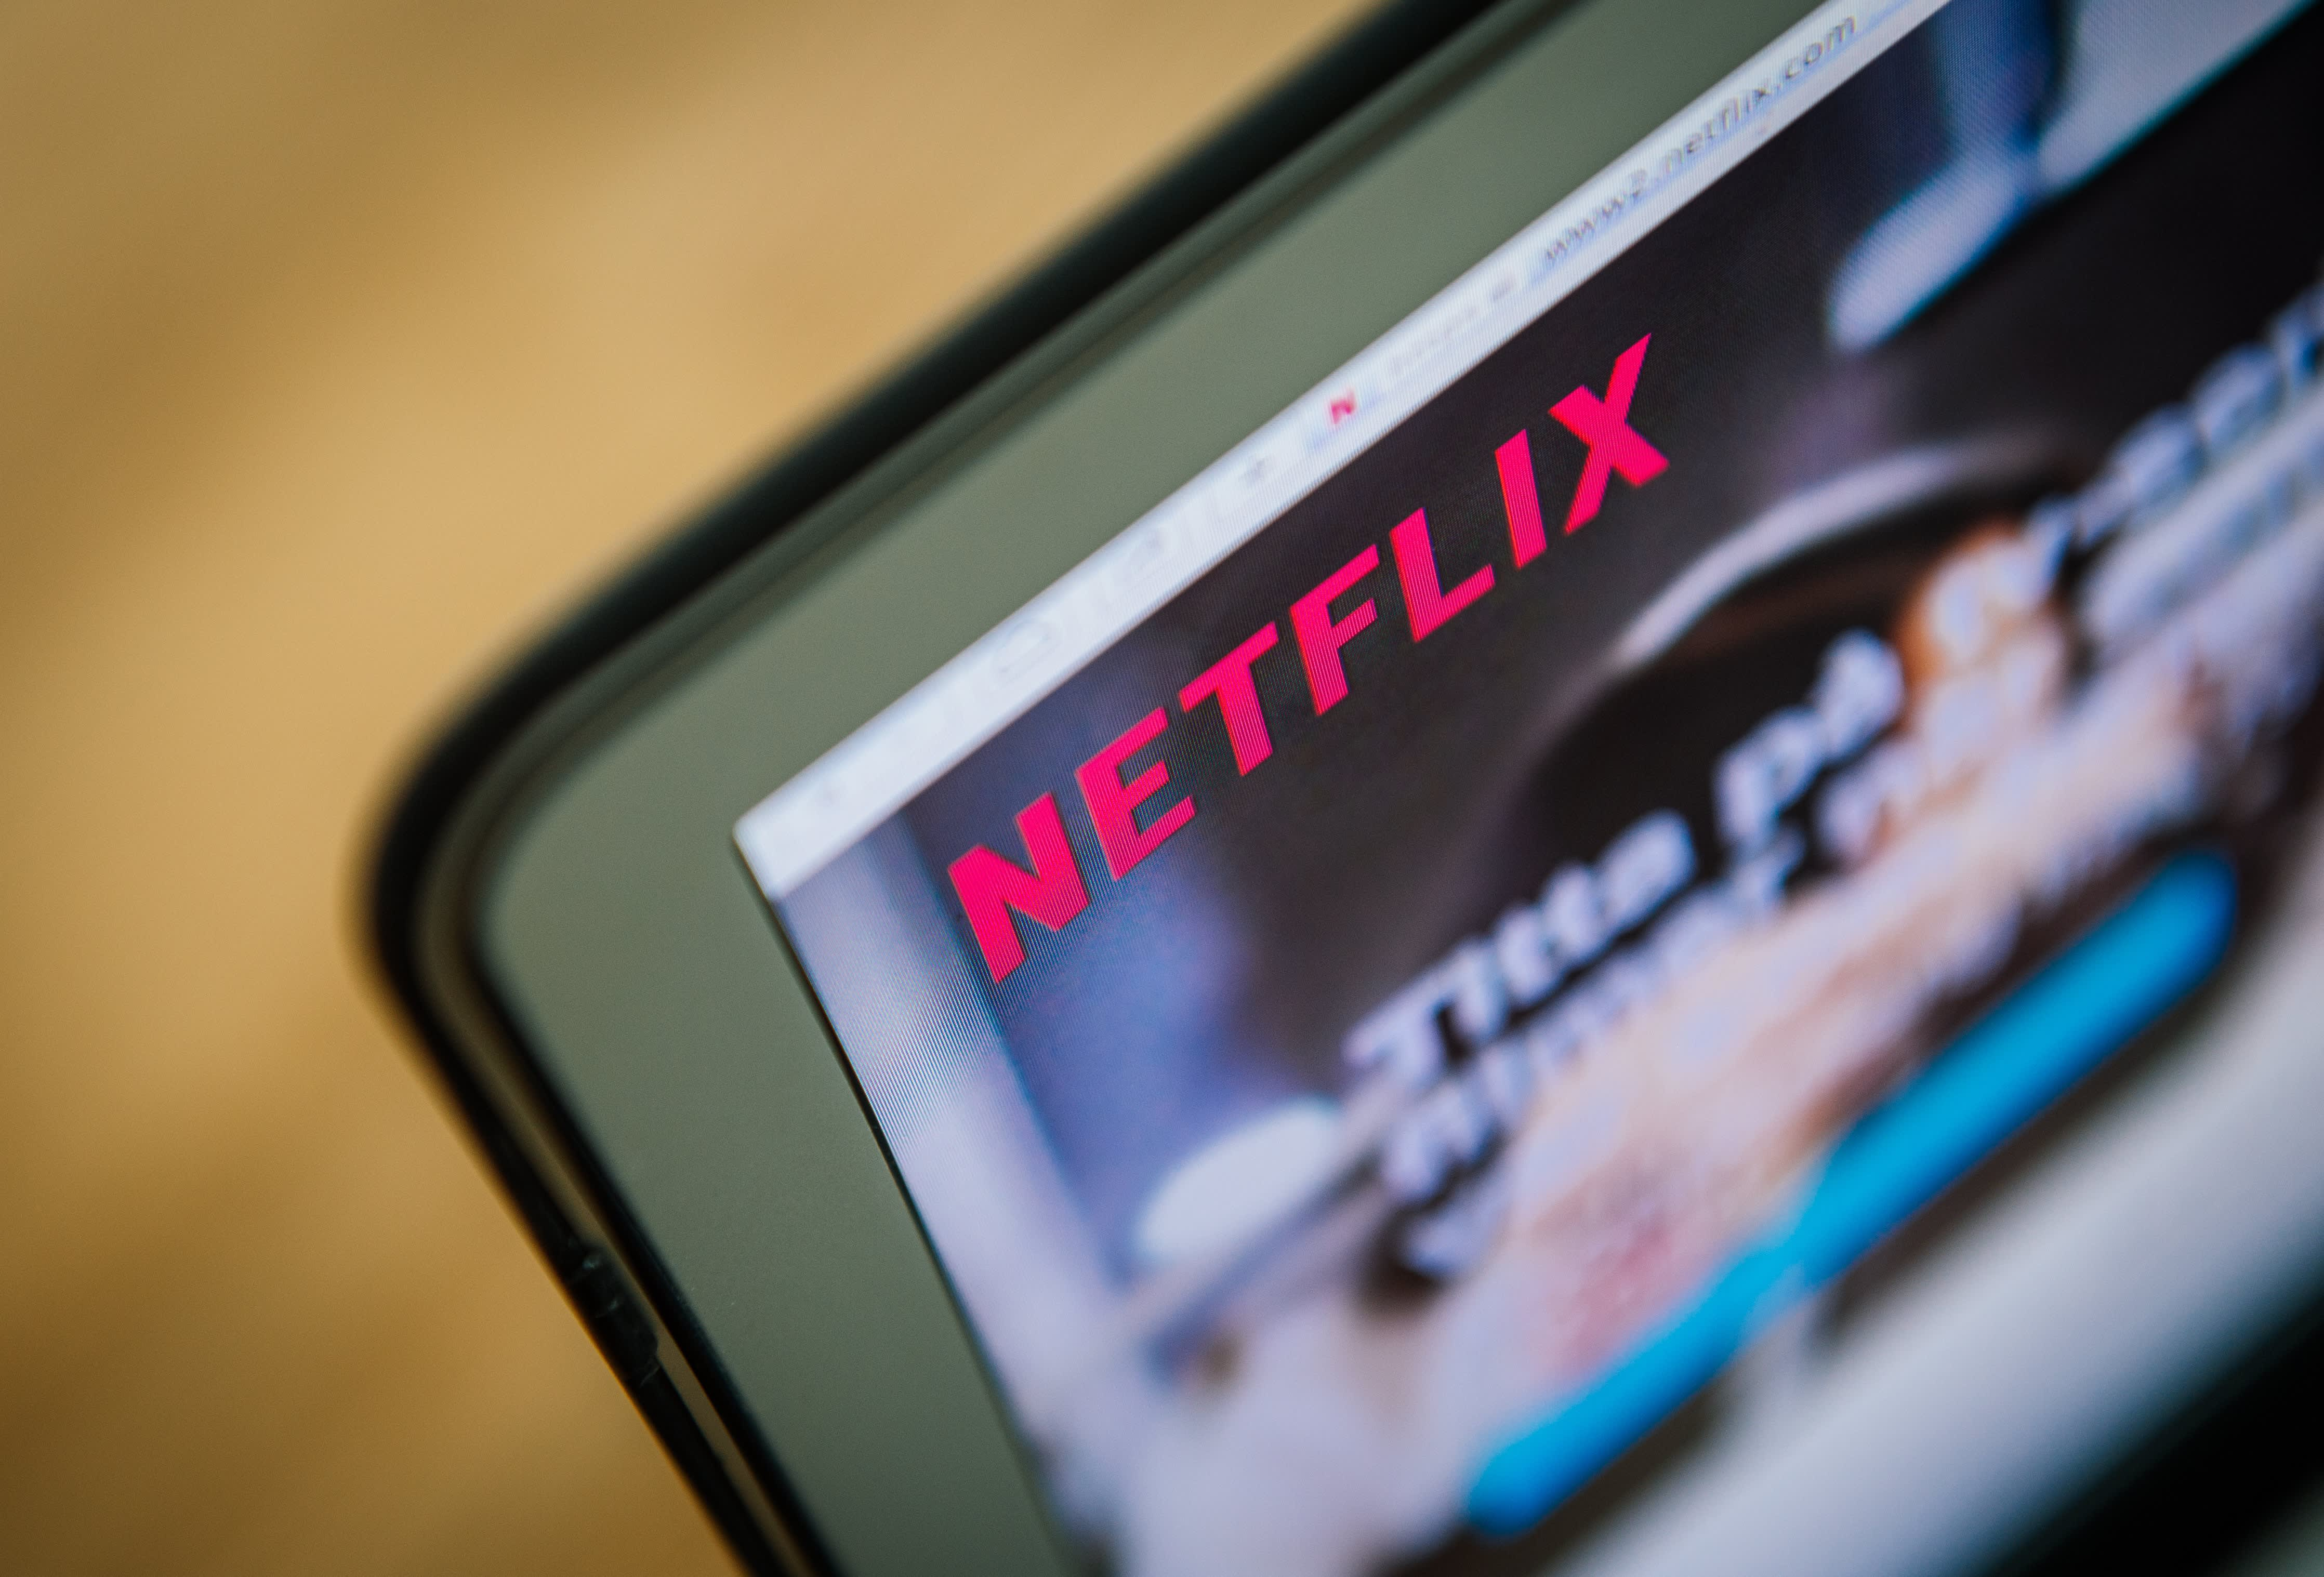 Netflix soars after beating on earnings, despite miss on subscribers